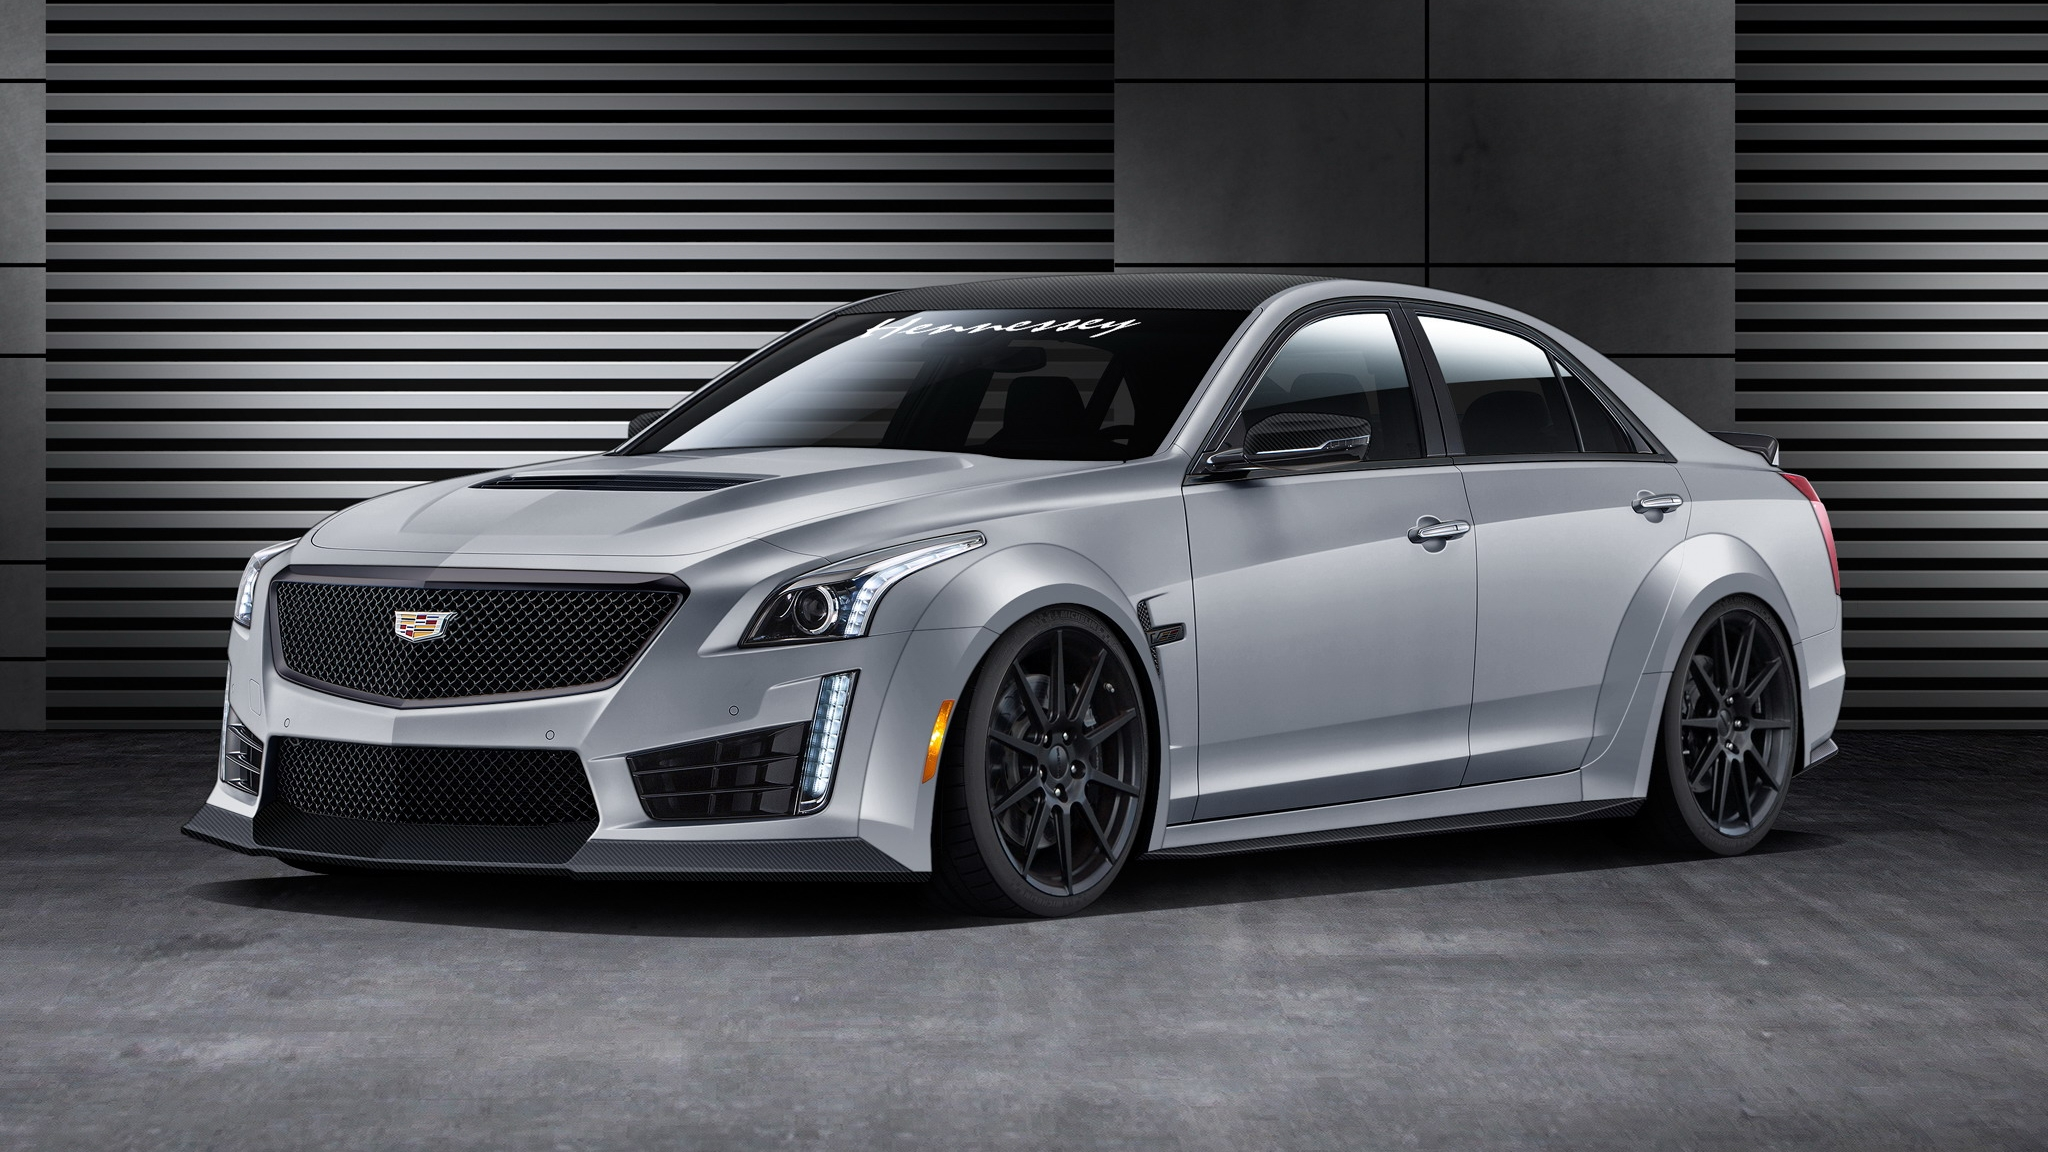 2016 Cadillac CTS-V By Hennessey Review - Gallery - Top Sd